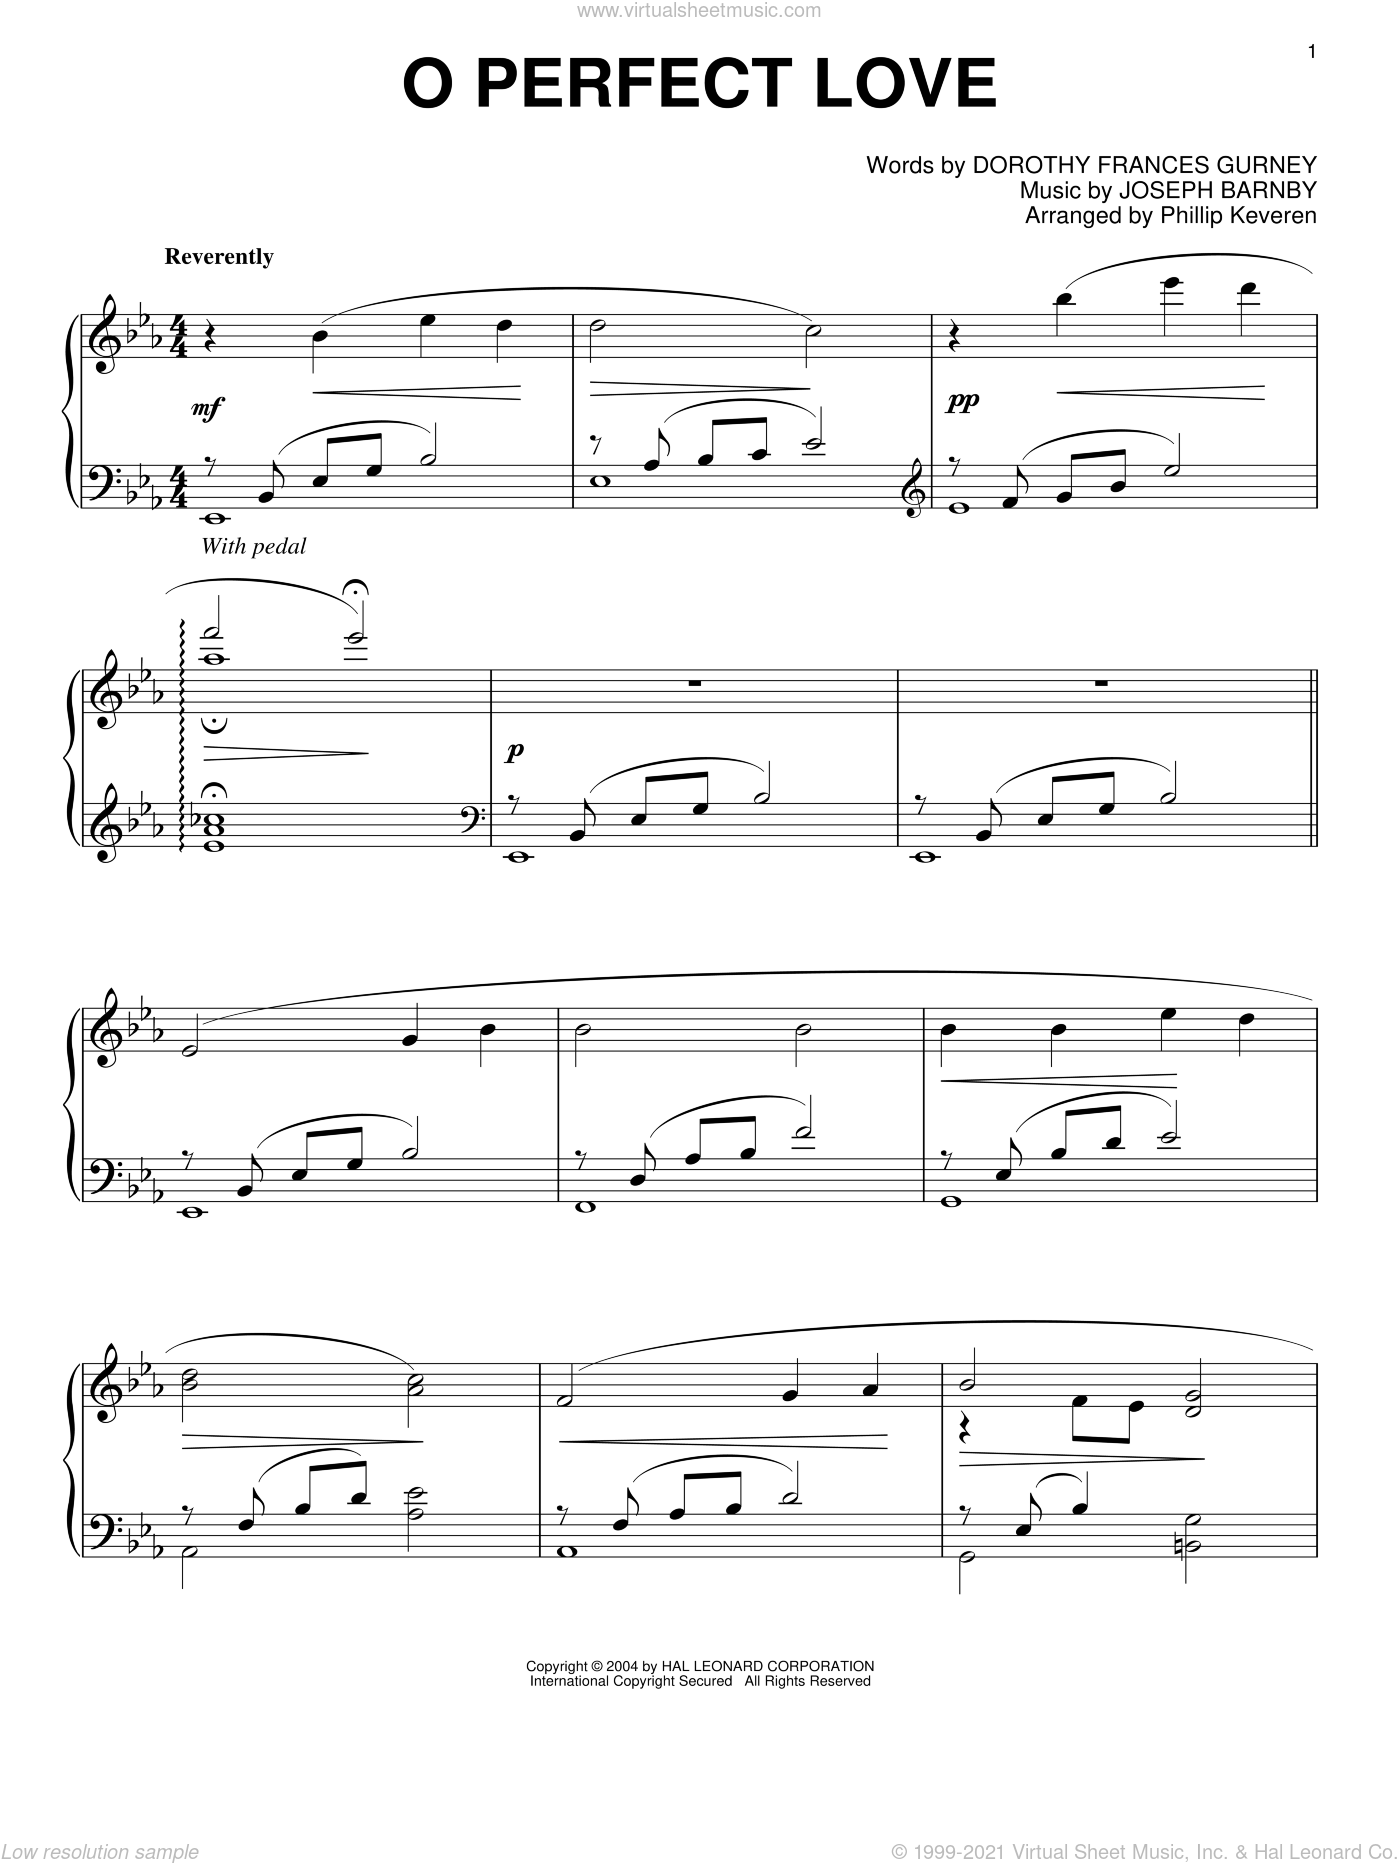 O Perfect Love sheet music for piano solo by Dorothy Frances Gurney, Phillip Keveren and Joseph Barnby